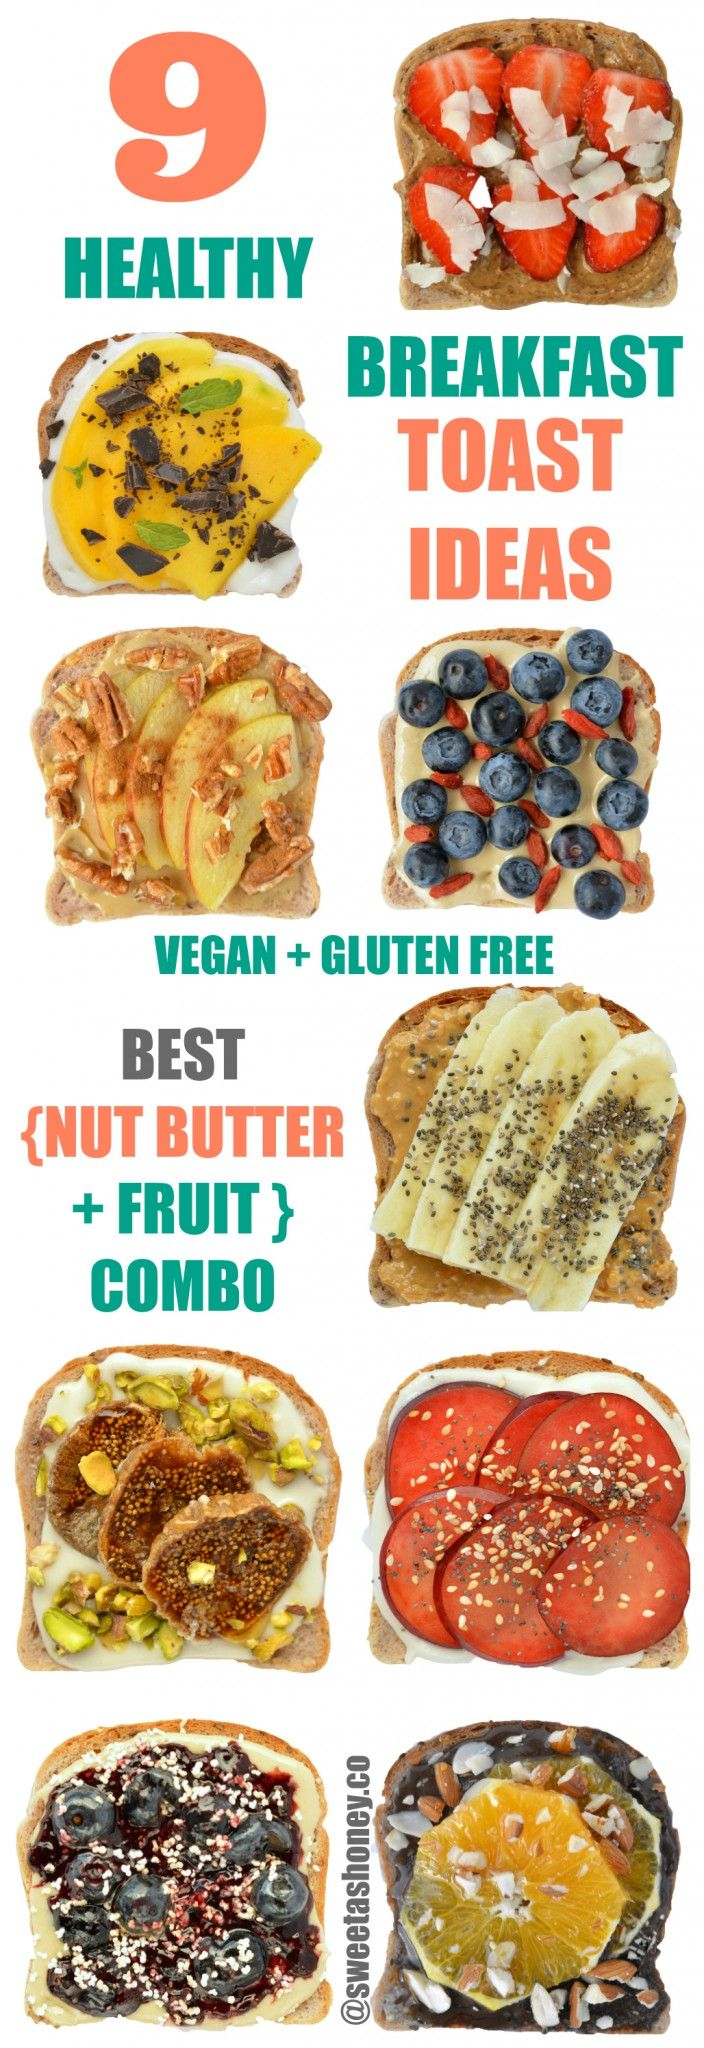 The BEST Vegan & Gluten Free Breakfast Toast. I love those fancy Nut Butter + Fruit Combo for Breakfast. Fulfilling, high in protein and fibre.